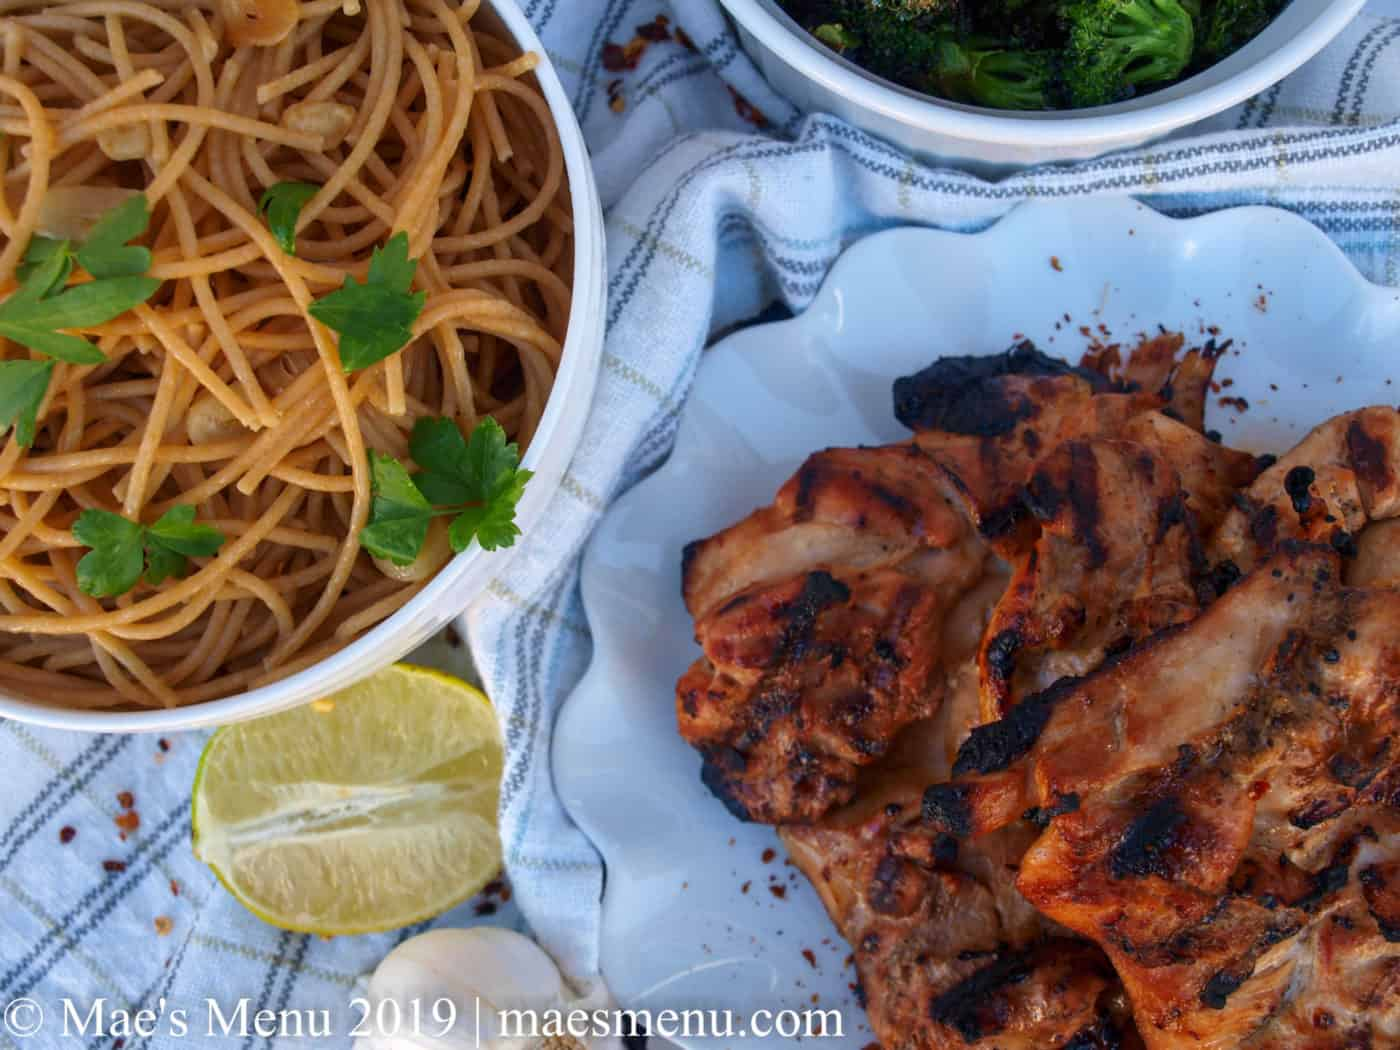 Sesame grilled chicken, garlic, half a lime, a bowl of pasta and parsley and a bowl of roasted broccoli on a white striped towel.